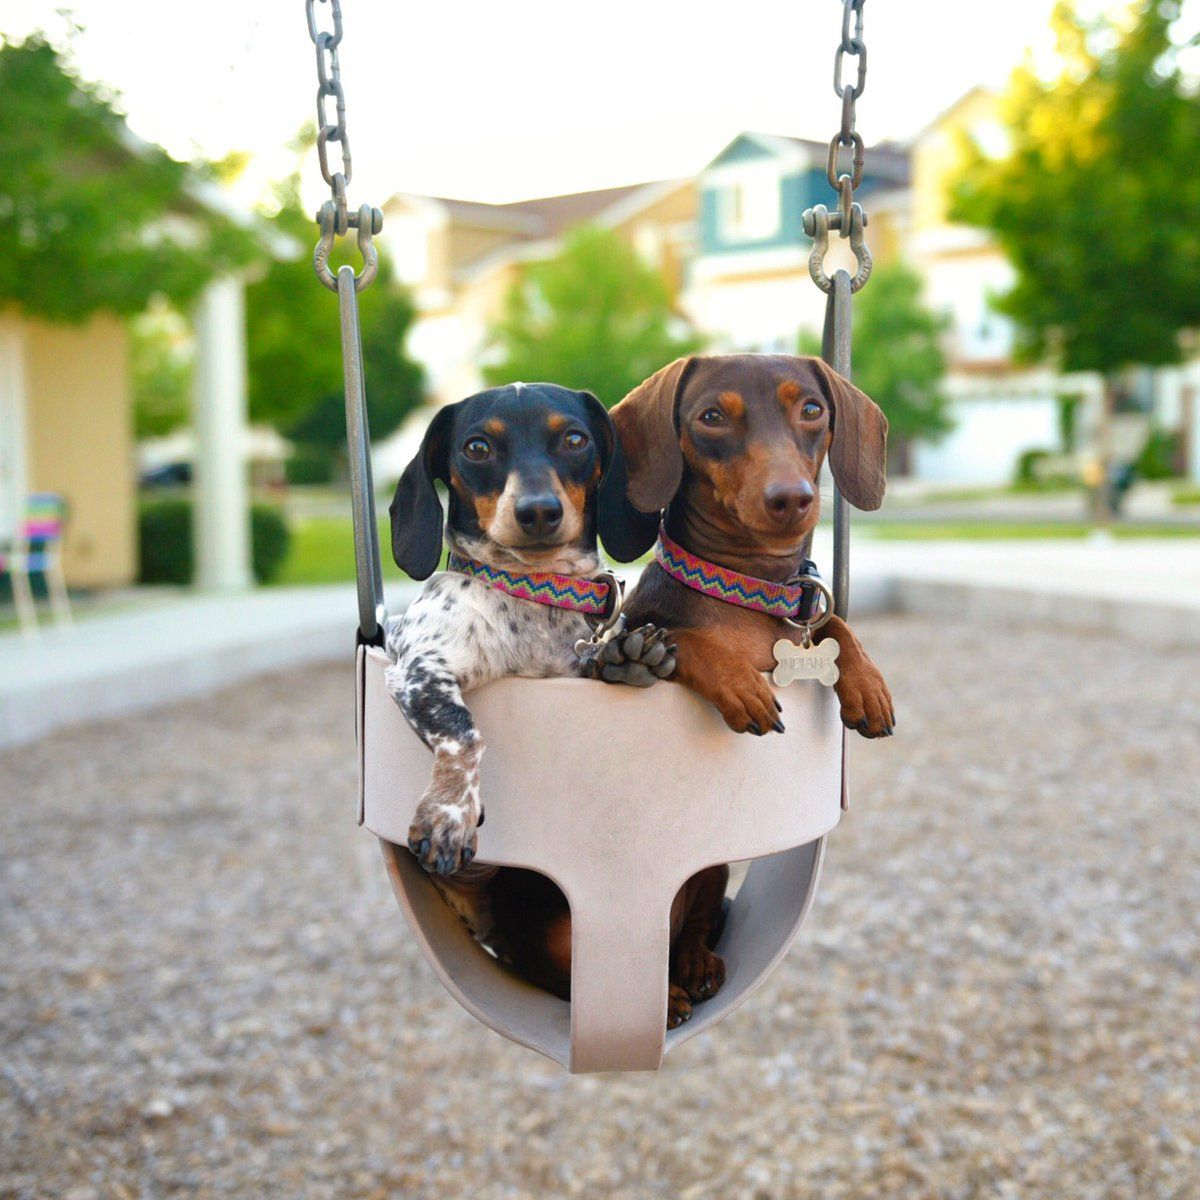 Just Keep Swinging Just Keep Swinging Just Keep Swinging Reese Indiana The Miniature Dachshund Duo Playing Funny Dachshund Wiener Dog Dachshund Puppies